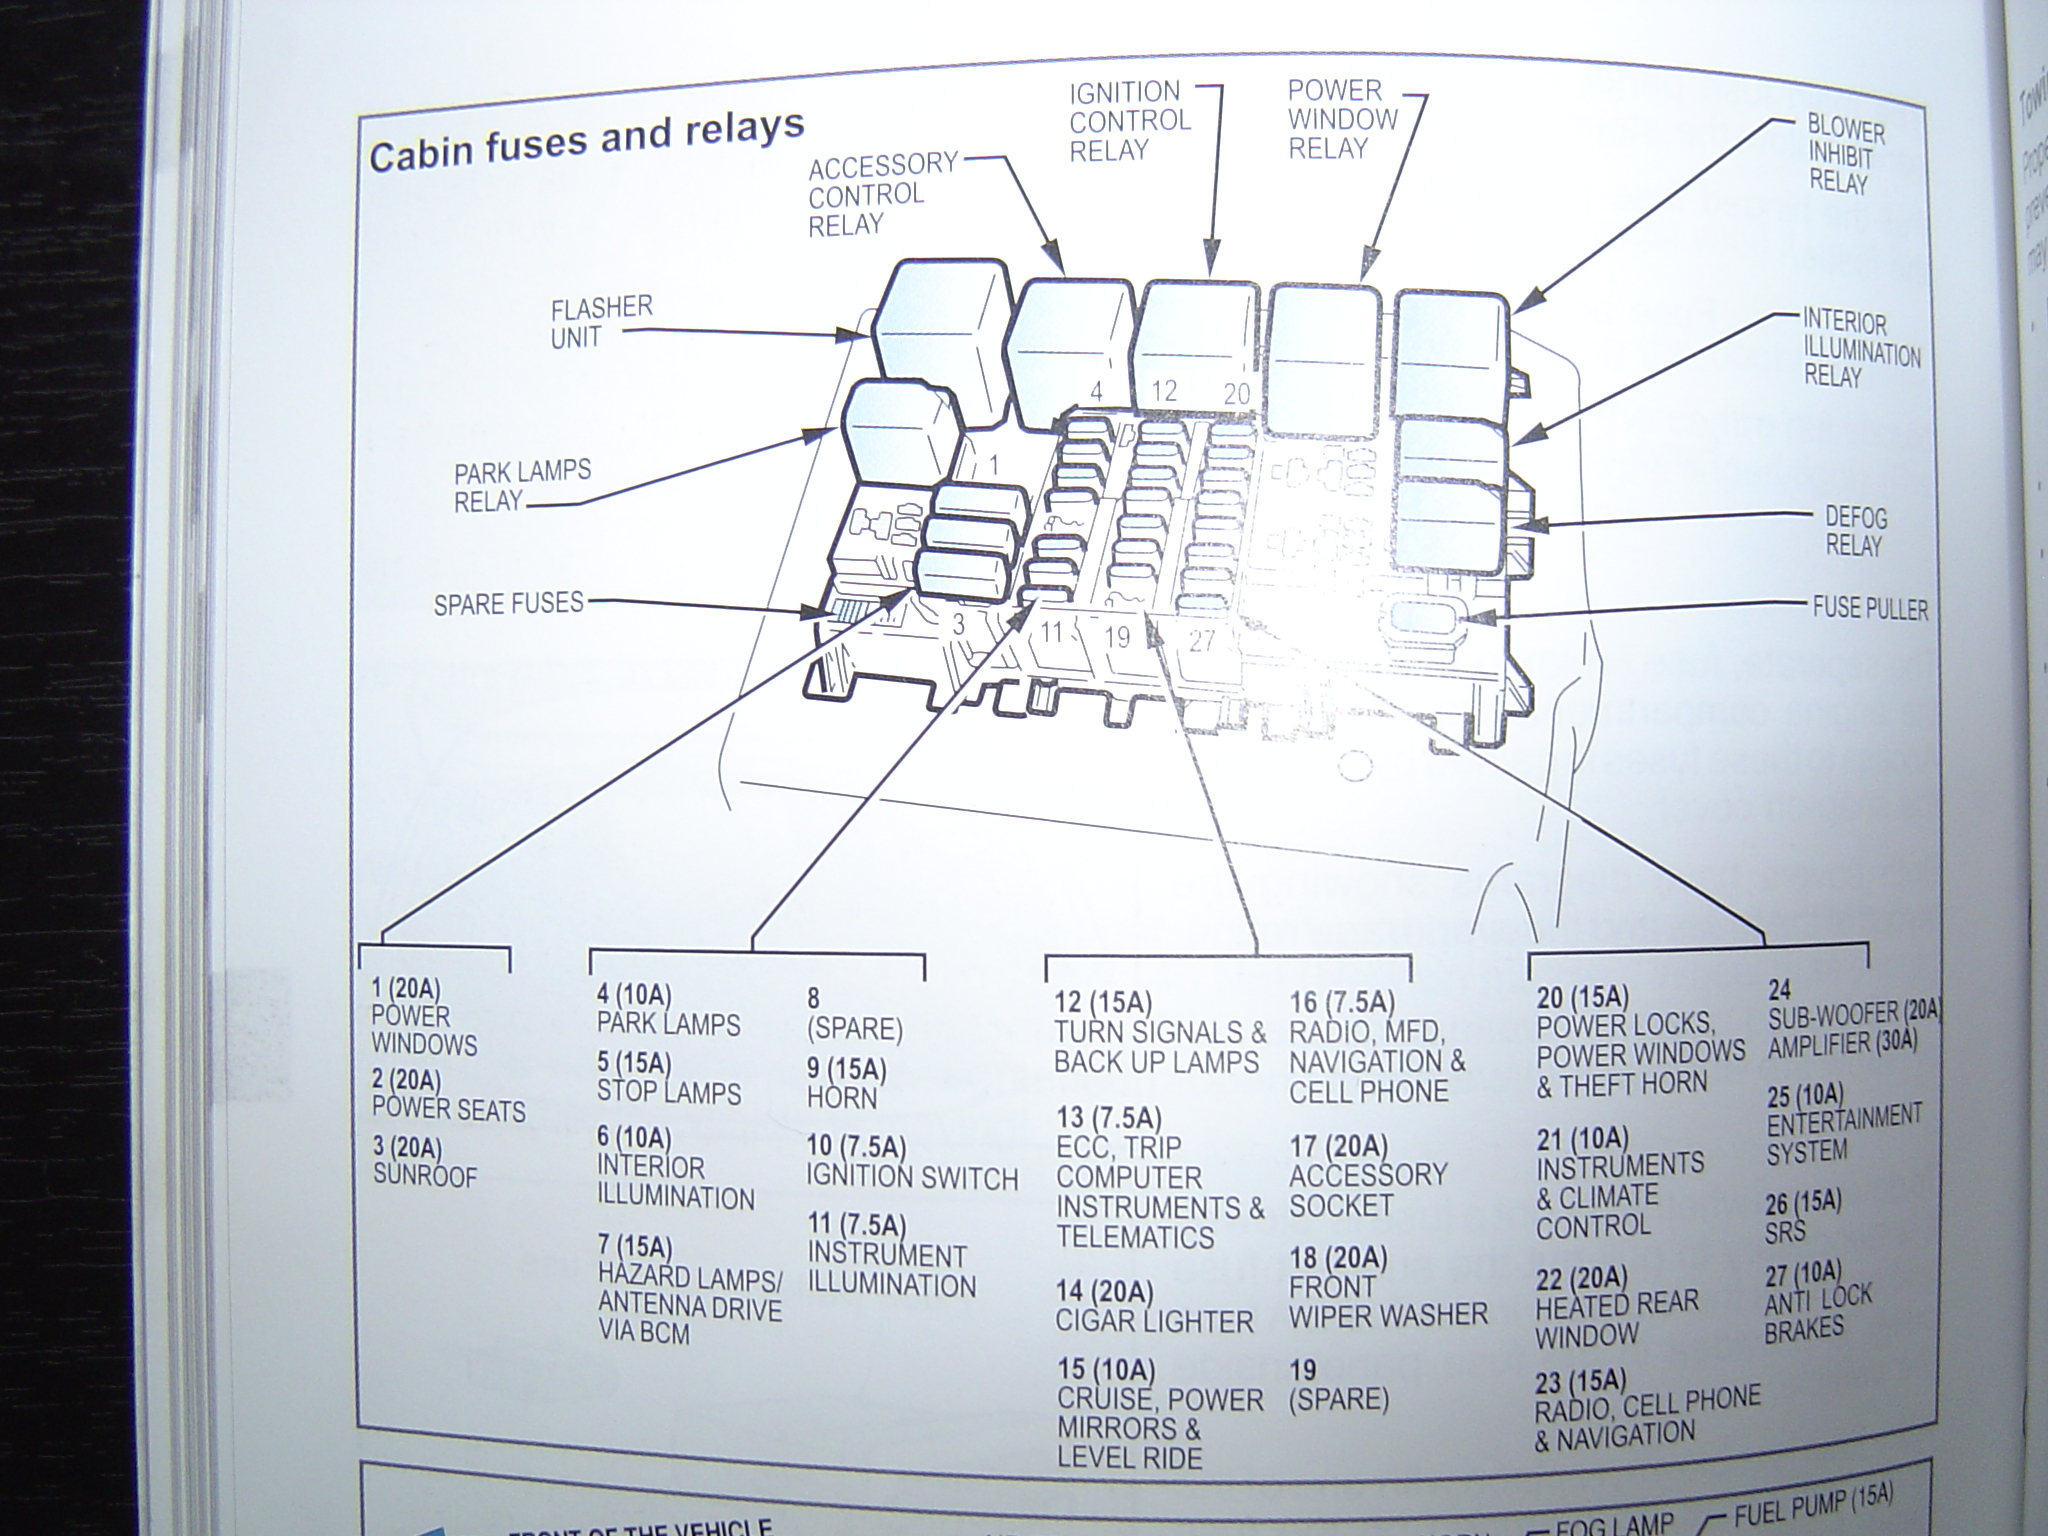 VY_CABIN_FUSEBOX fuse box diagram au falcon fuse wiring diagrams instruction ba falcon fuse box location at nearapp.co